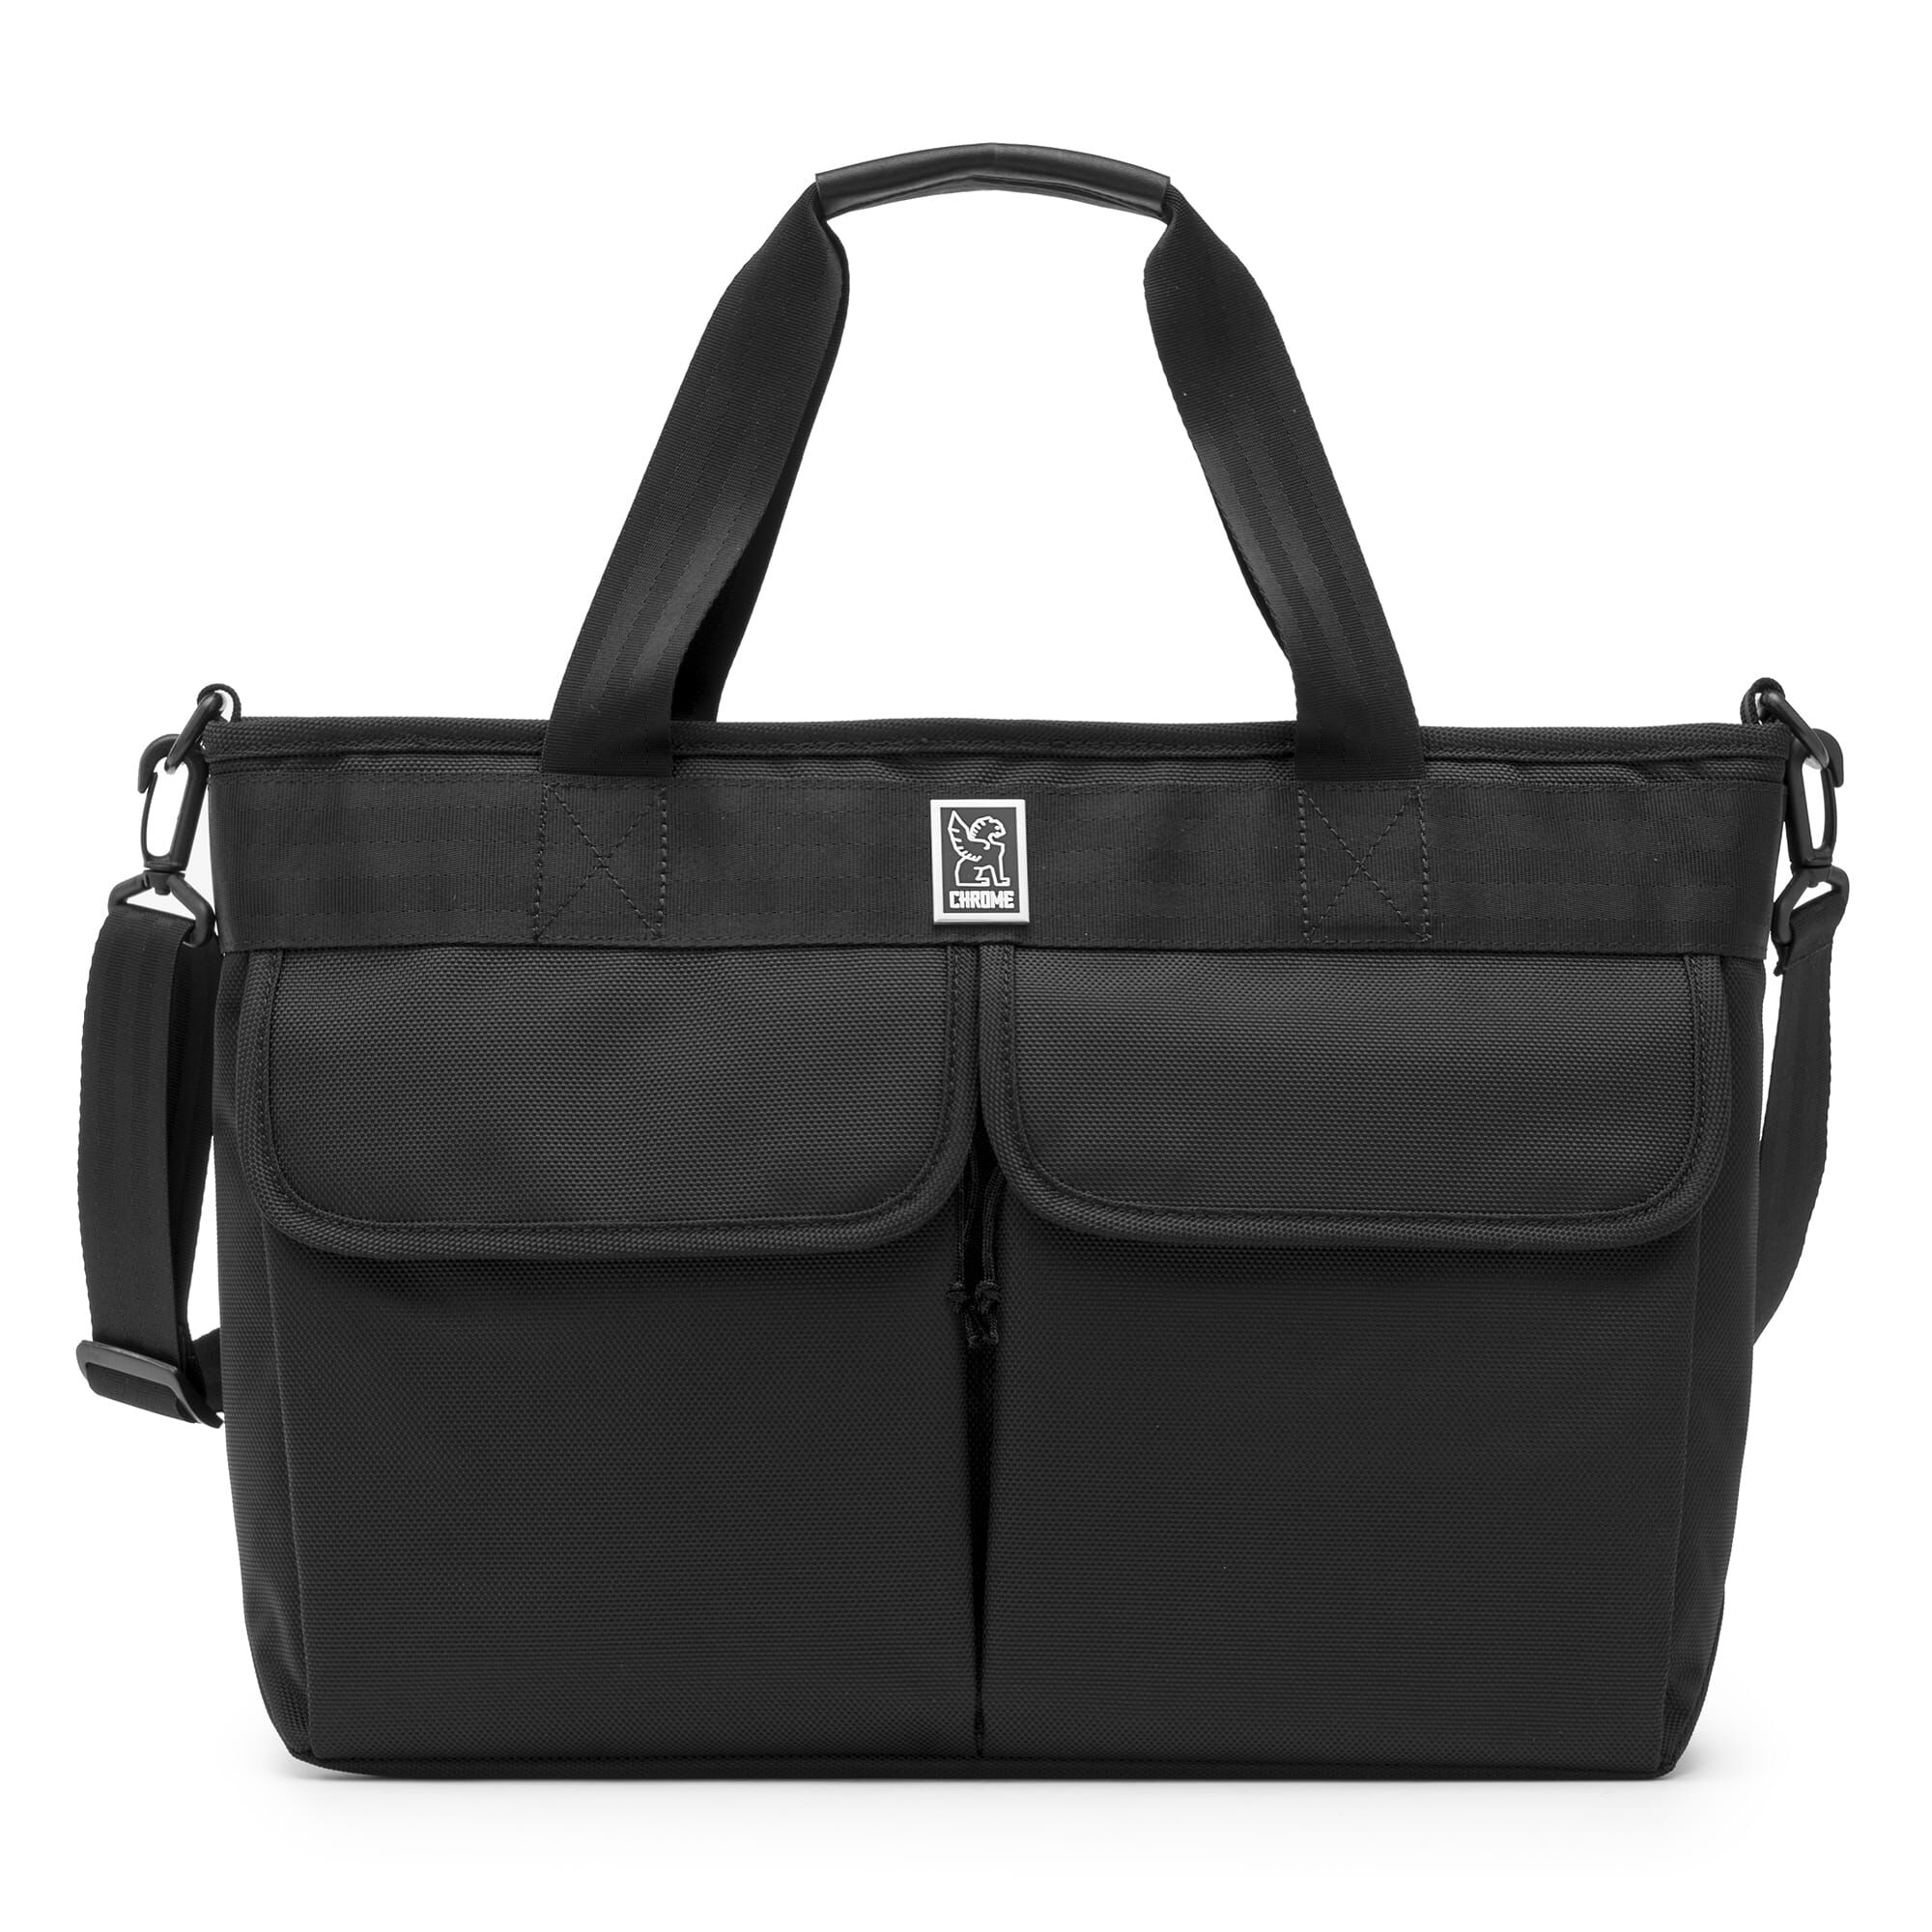 Juno Travel Tote Bag - Fits laptops up to 15